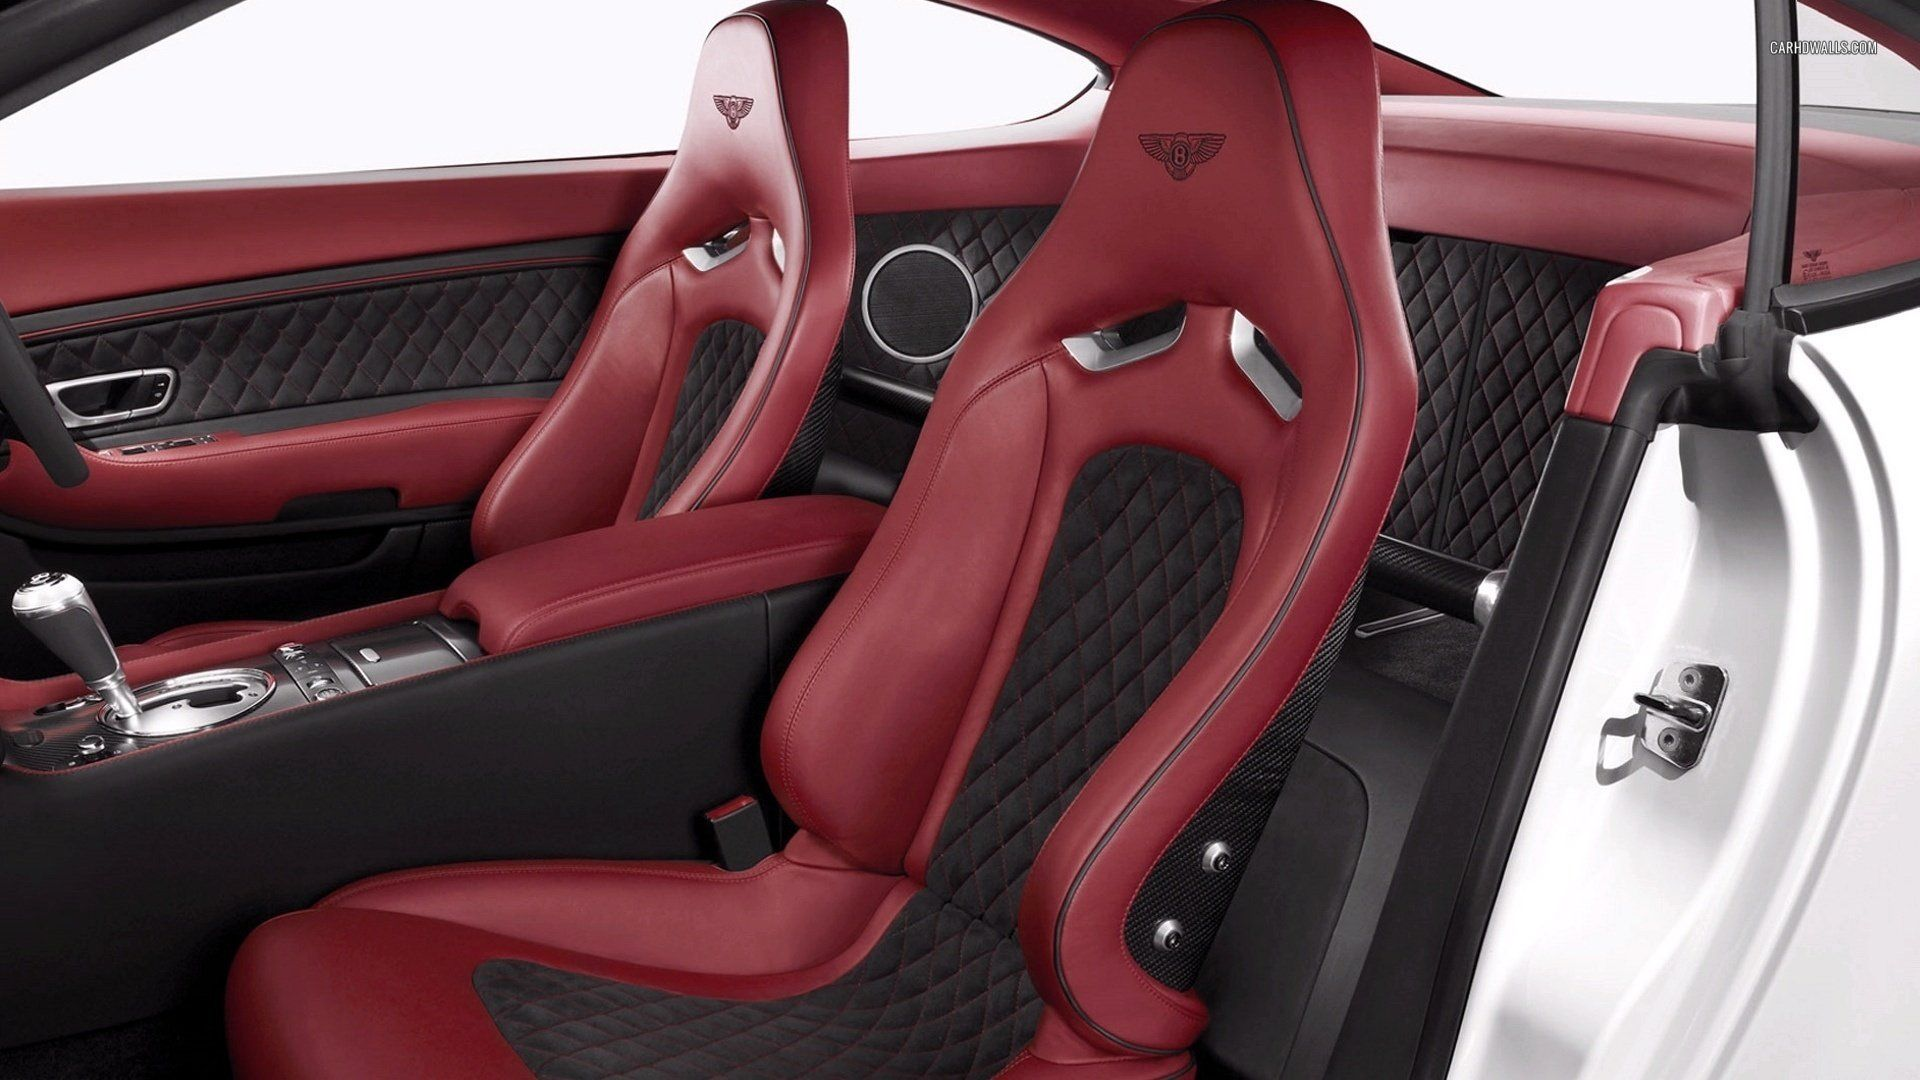 Bentley Continental Gt Supersports Interior Red And Black Two Tone